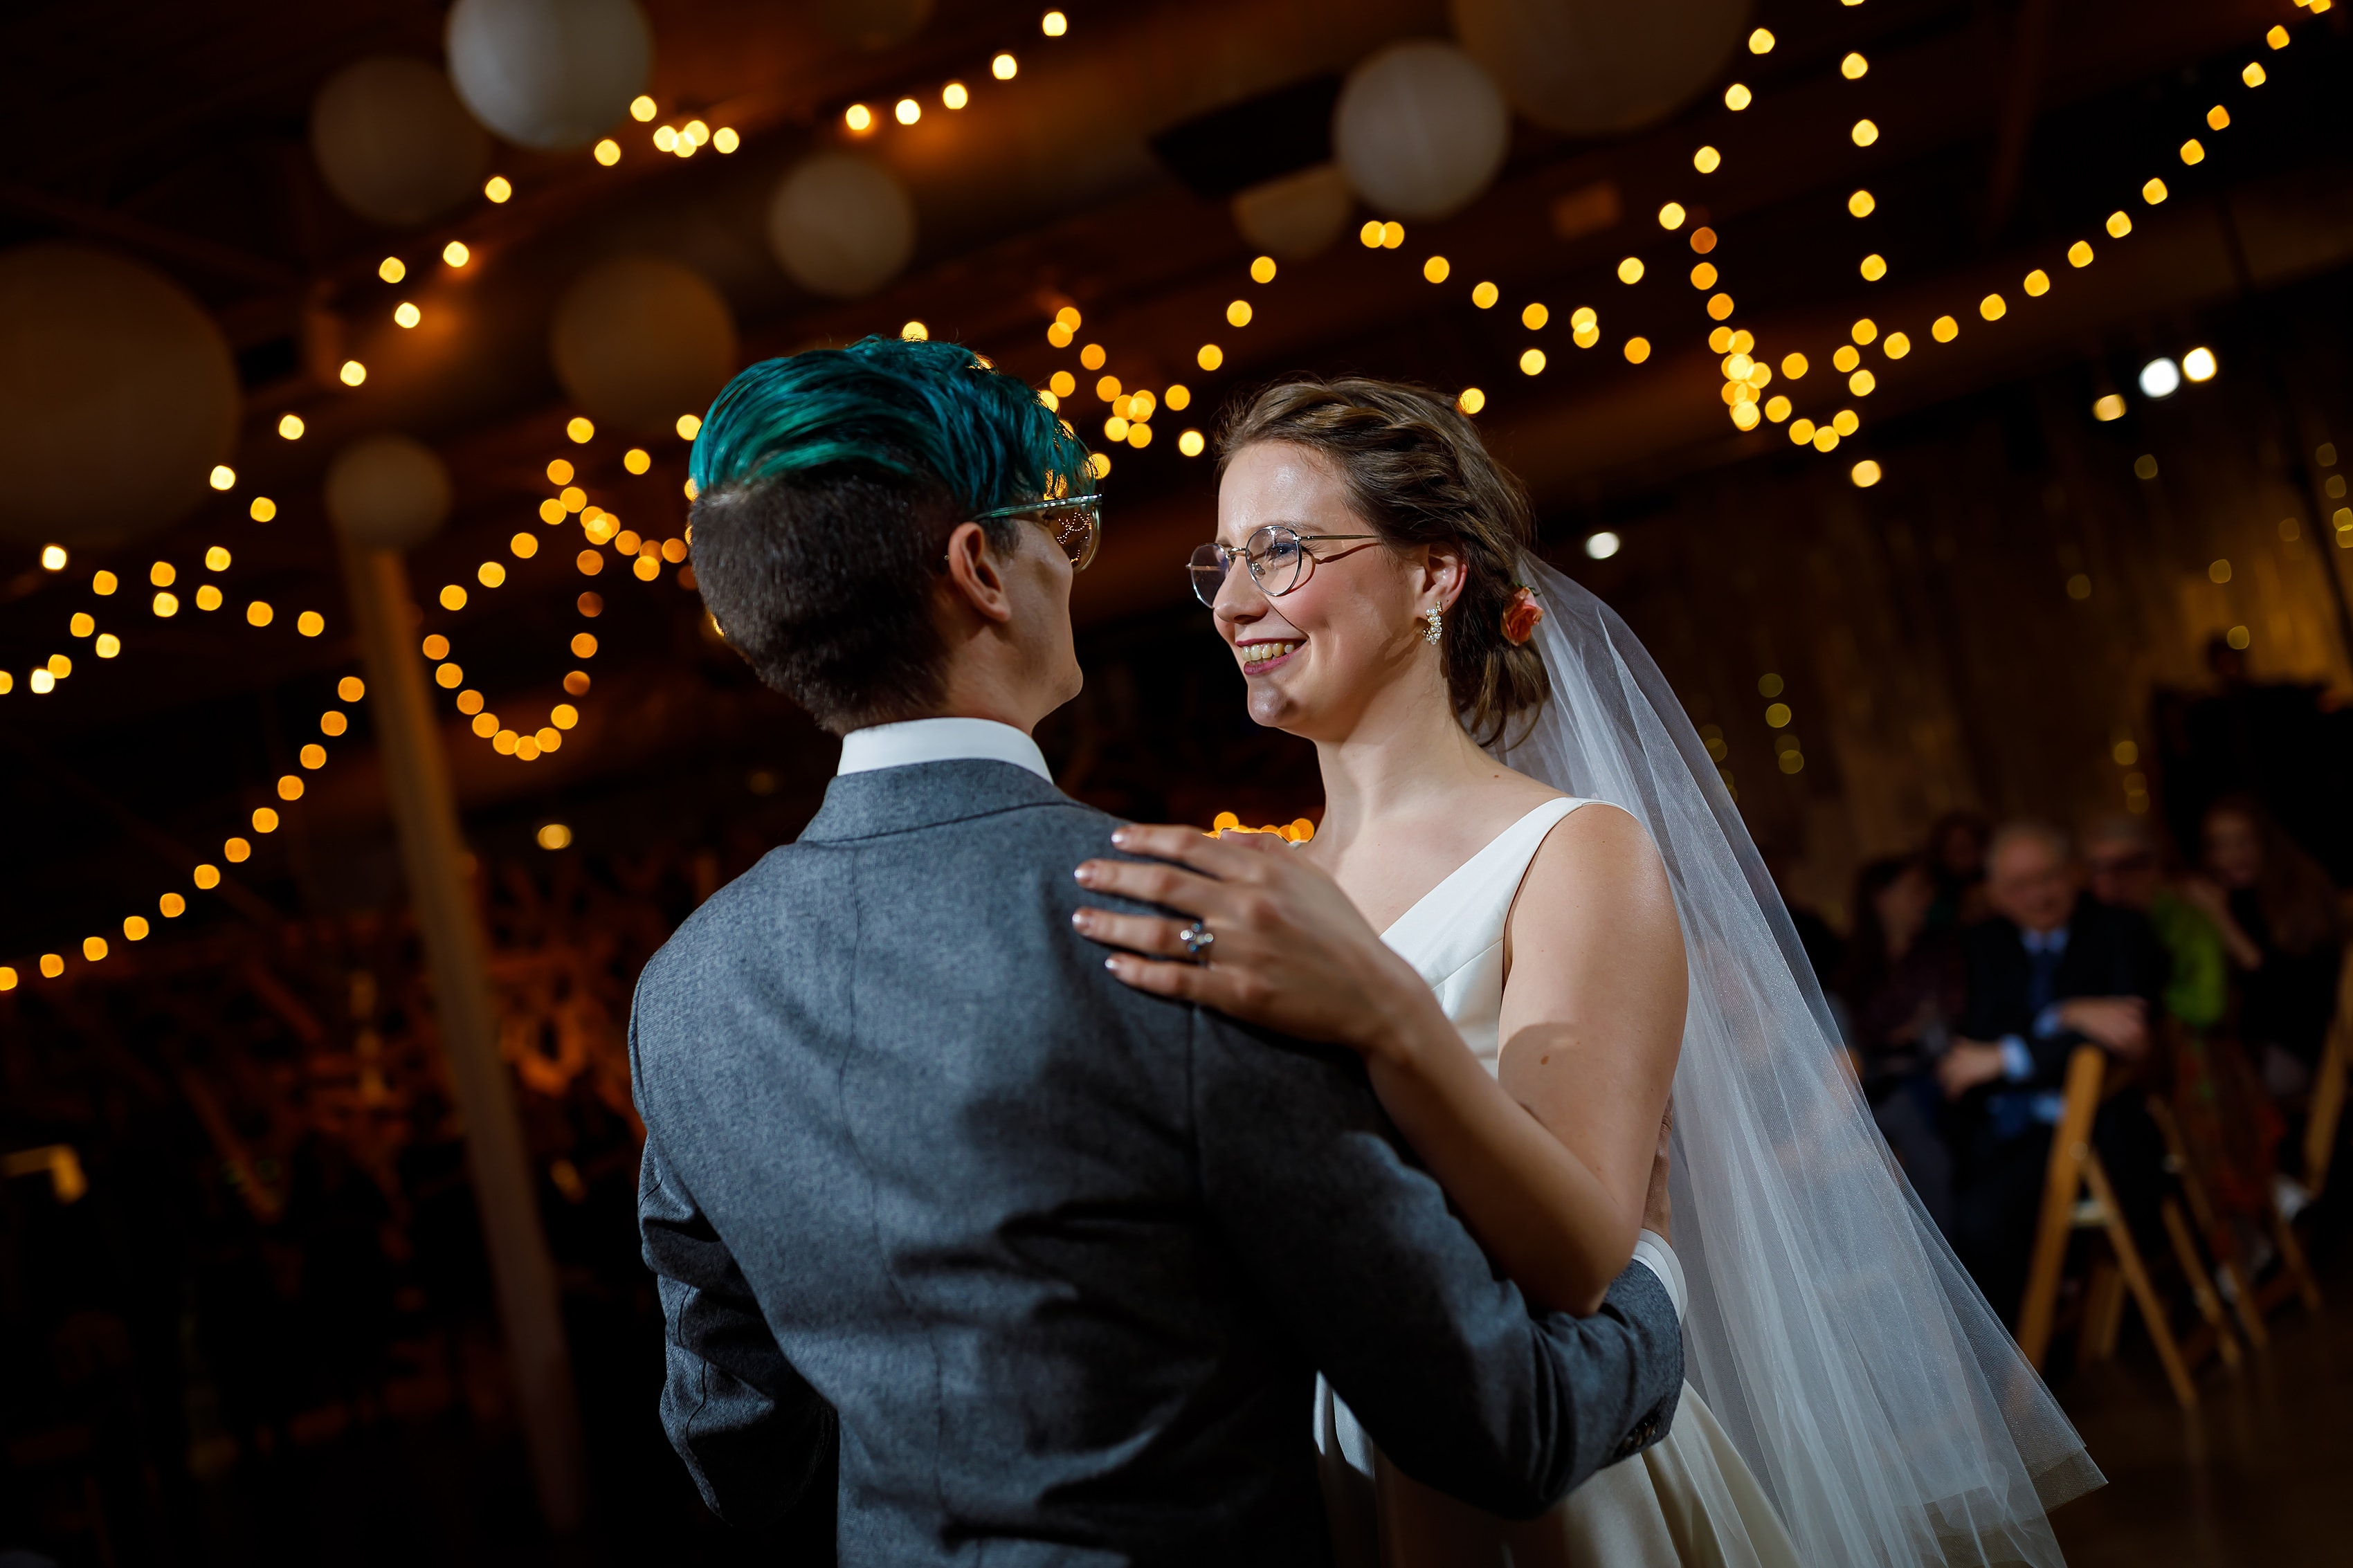 first dance with bride and groom during wedding reception at Rust Belt Market in downtown Ferndale, Michigan